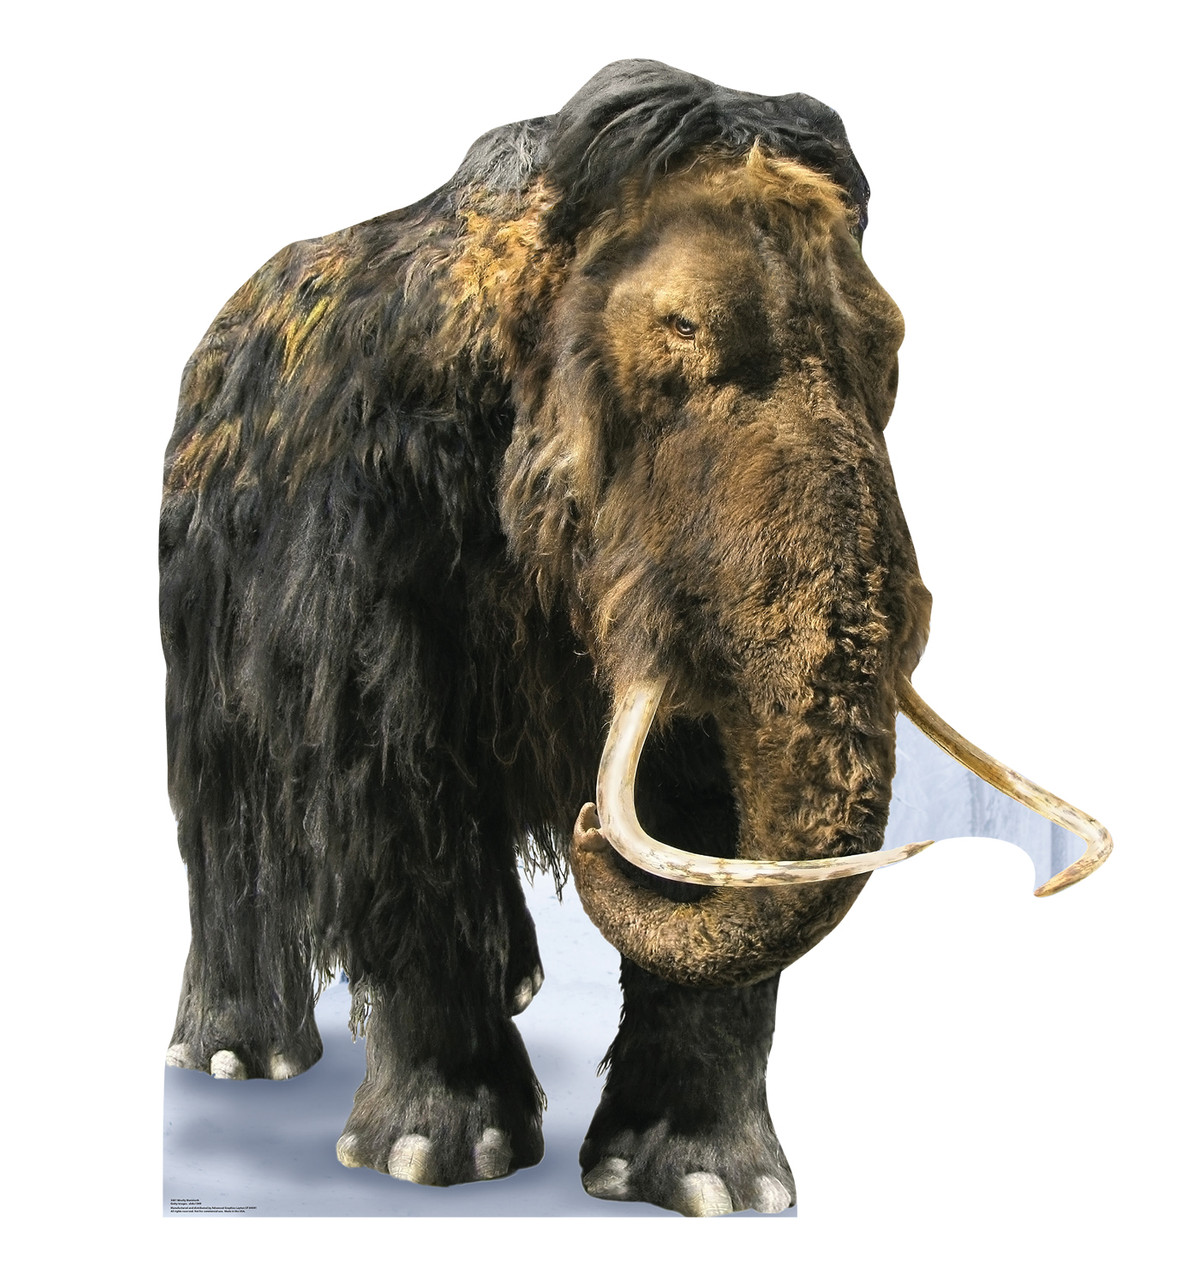 Life-size cardboard standee of the Woolly Mammoth.